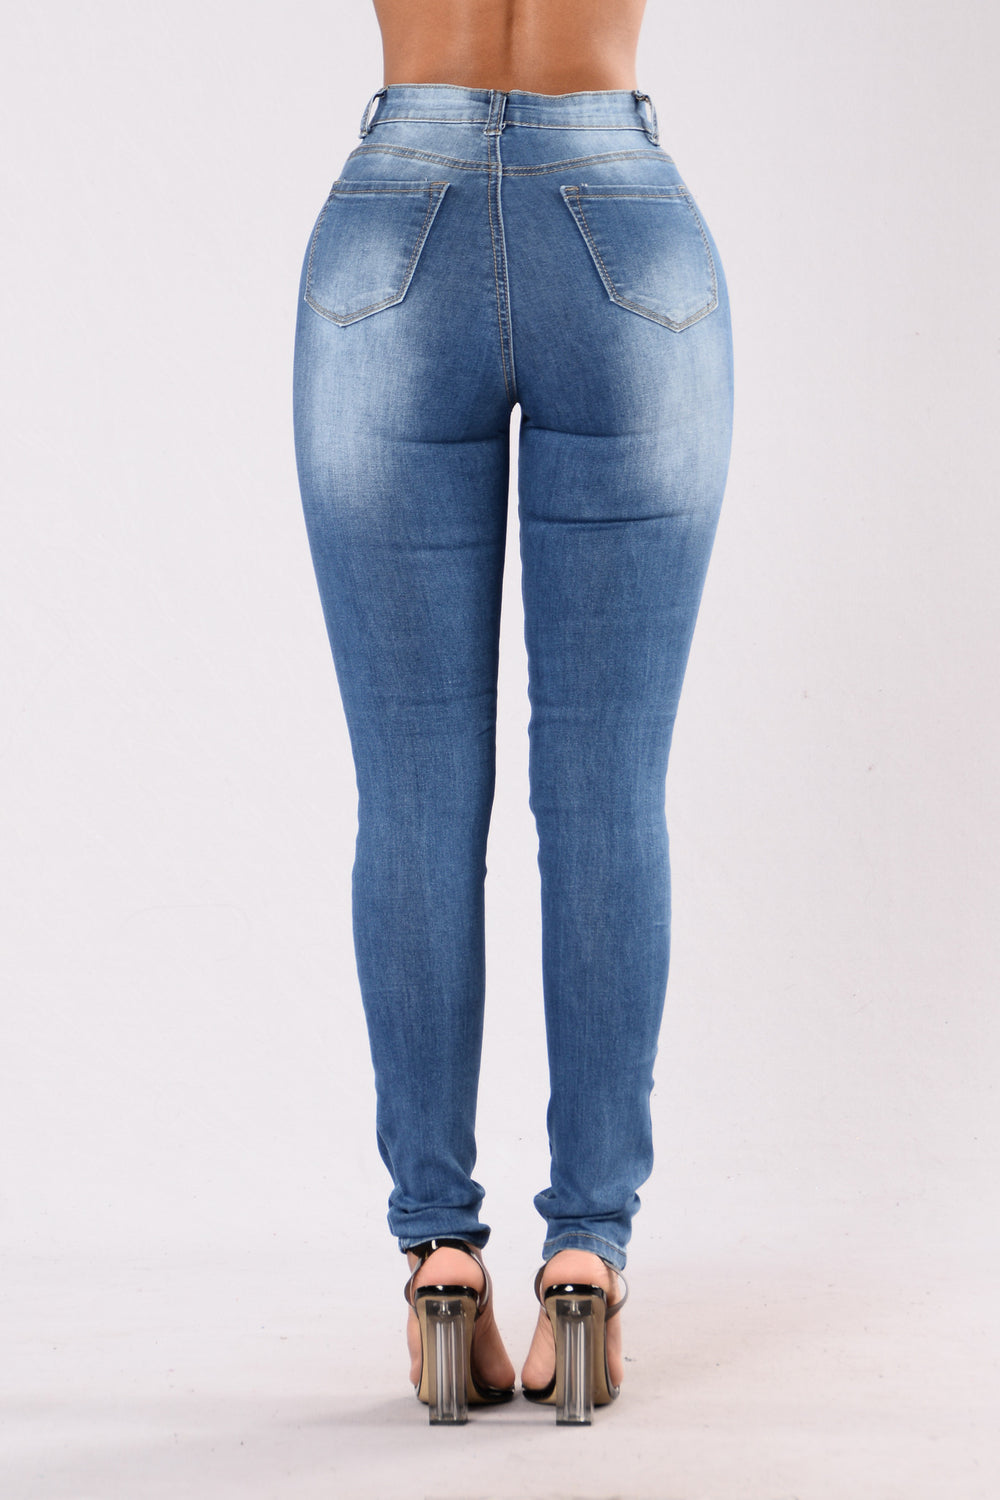 Never Forget Skinny Jean - Medium Blue